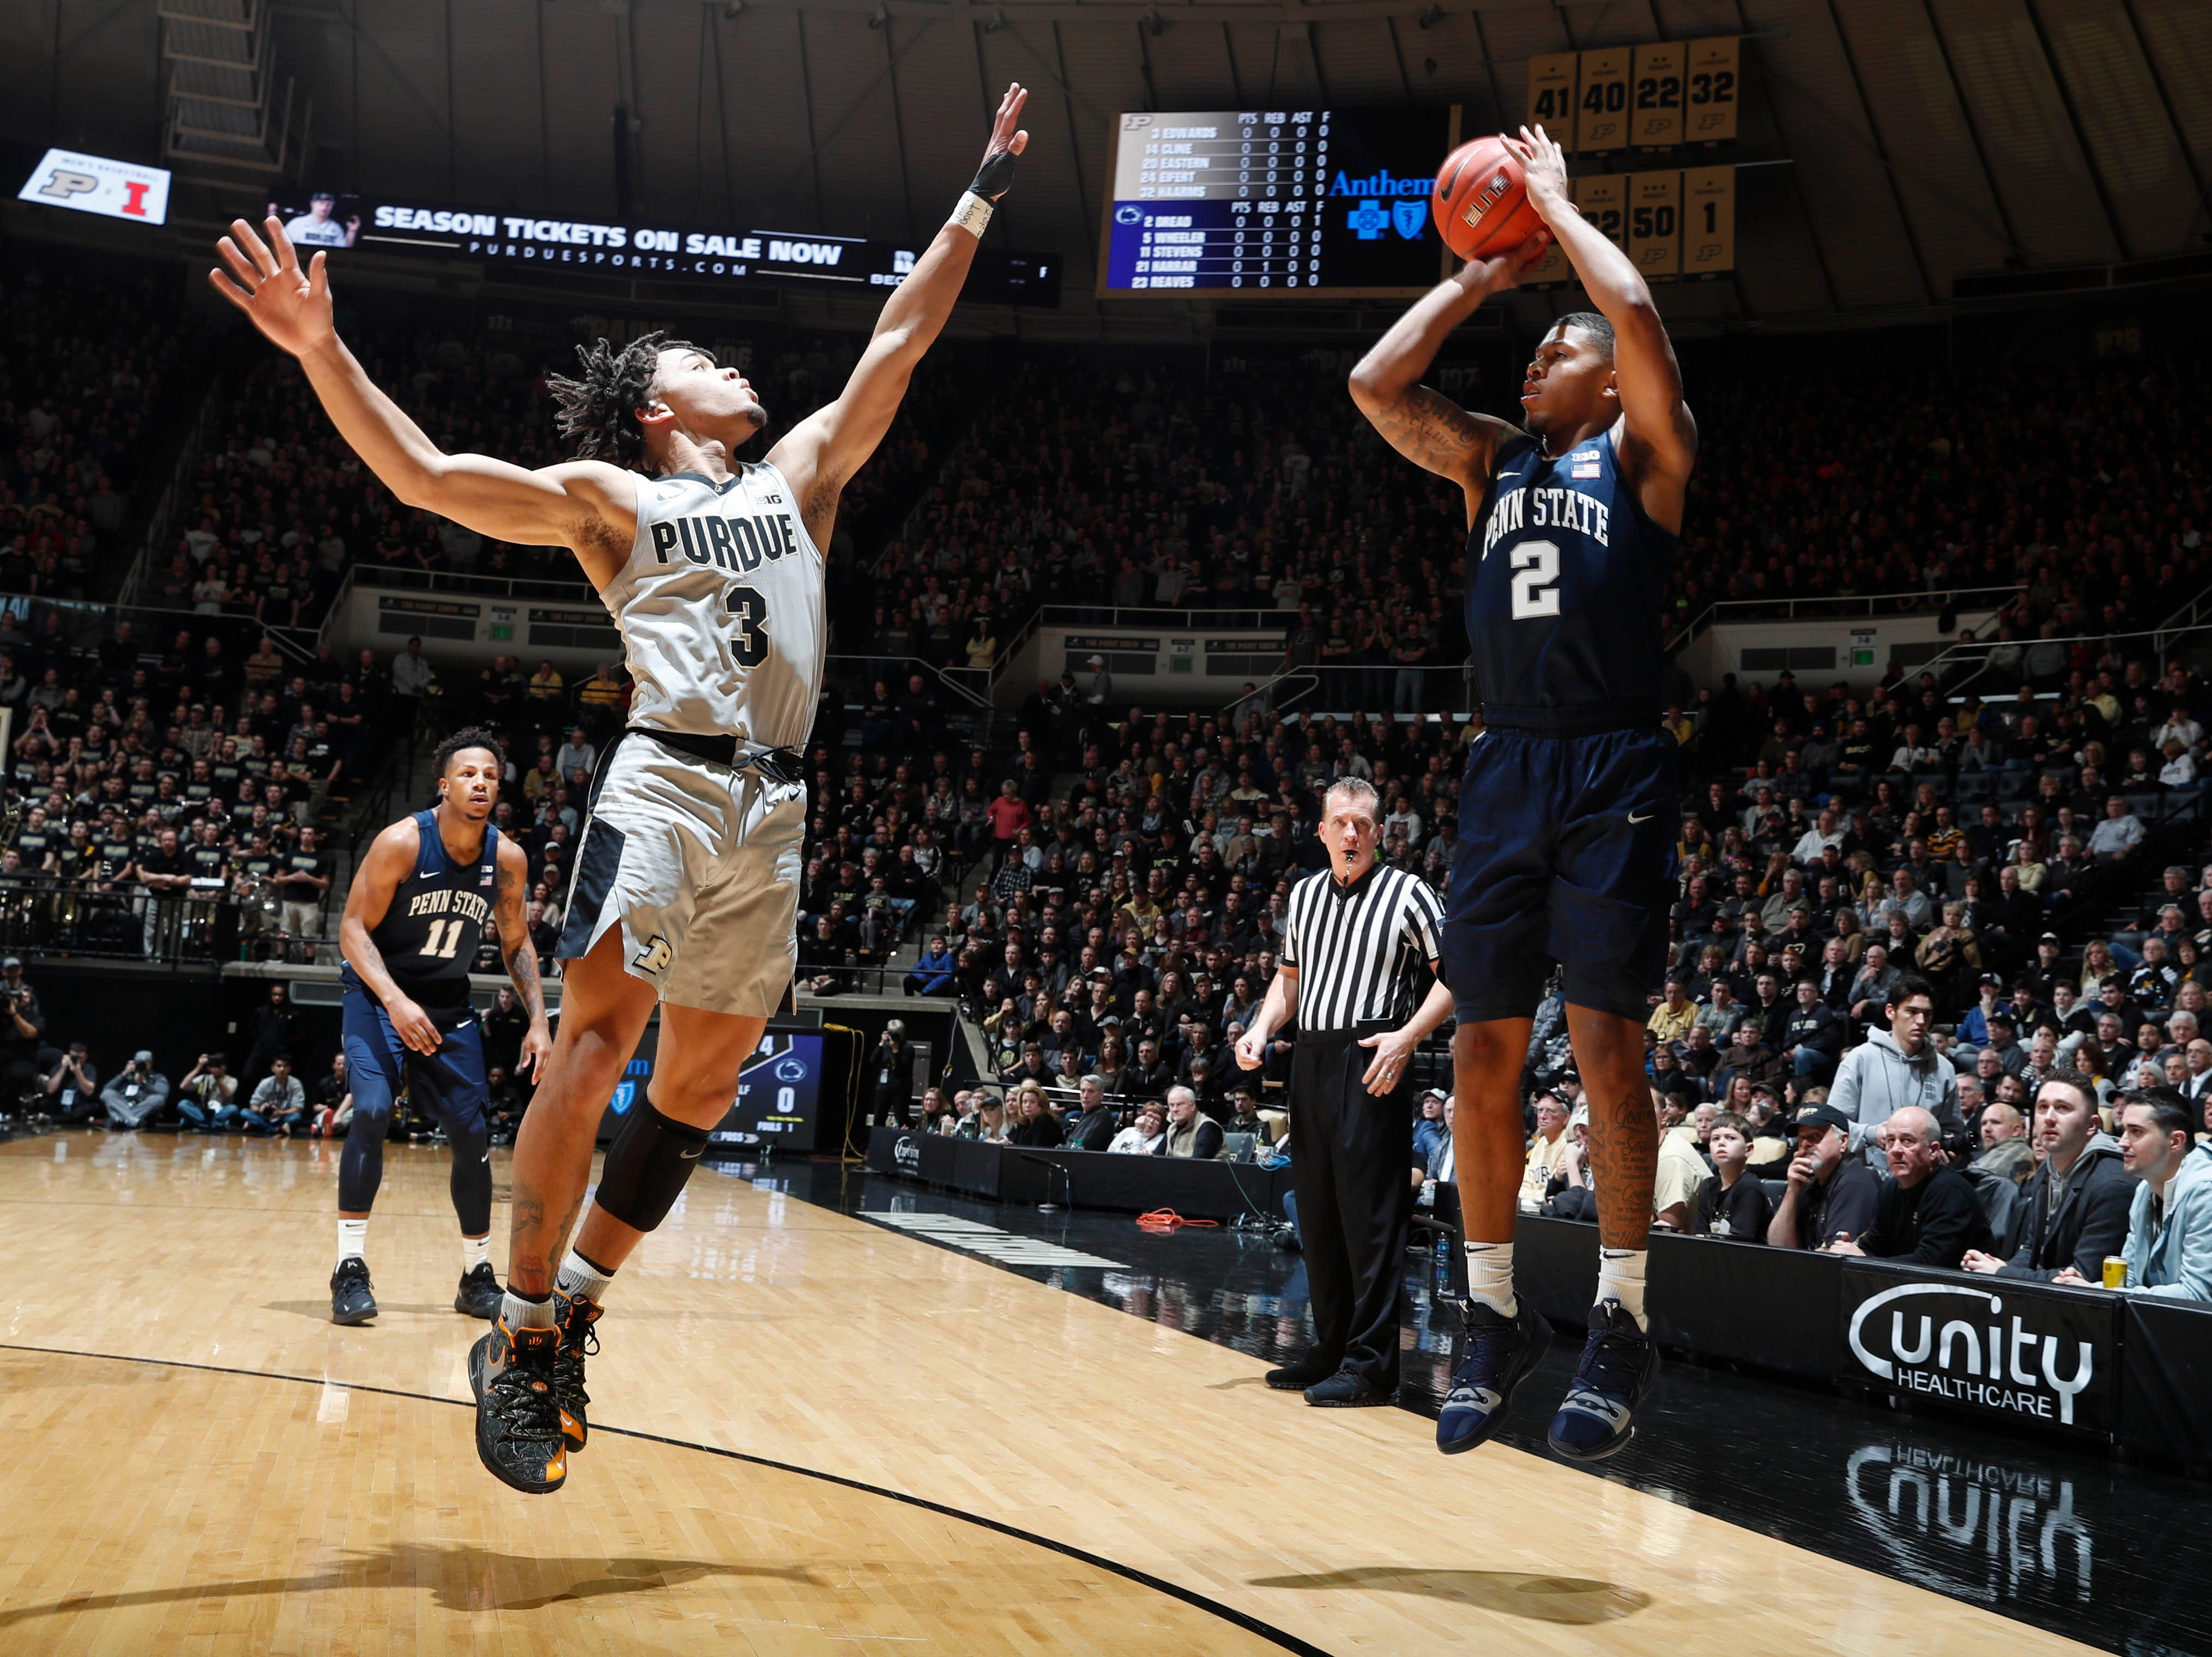 Feb 16, 2019; West Lafayette, IN, USA; Penn State Nittany Lions guard Myles Dread (2) takes a shot against Purdue Boilermakers guard Carsen Edwards (3) during the first half at Mackey Arena. Mandatory Credit: Brian Spurlock-USA TODAY Sports